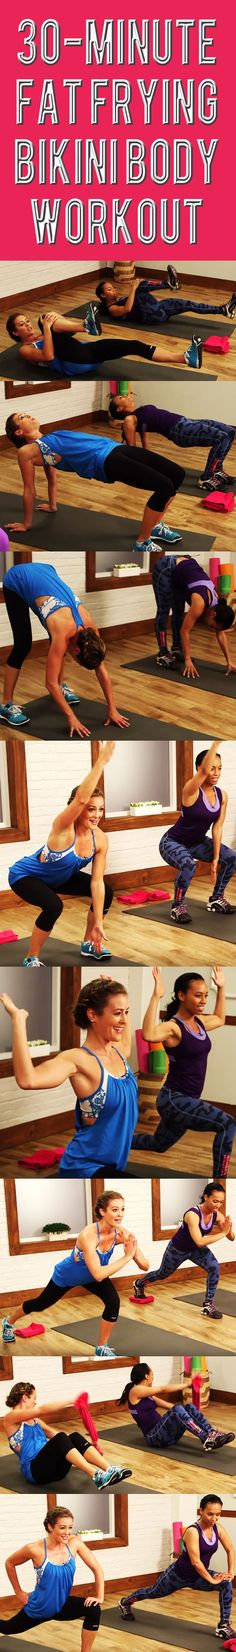 This workout was designed with SUMMER in mind —All the exercises target the trouble zones while keeping your heart rate up to burn fat. Press play and we will warm you up, work you out, and quickly cool you down.